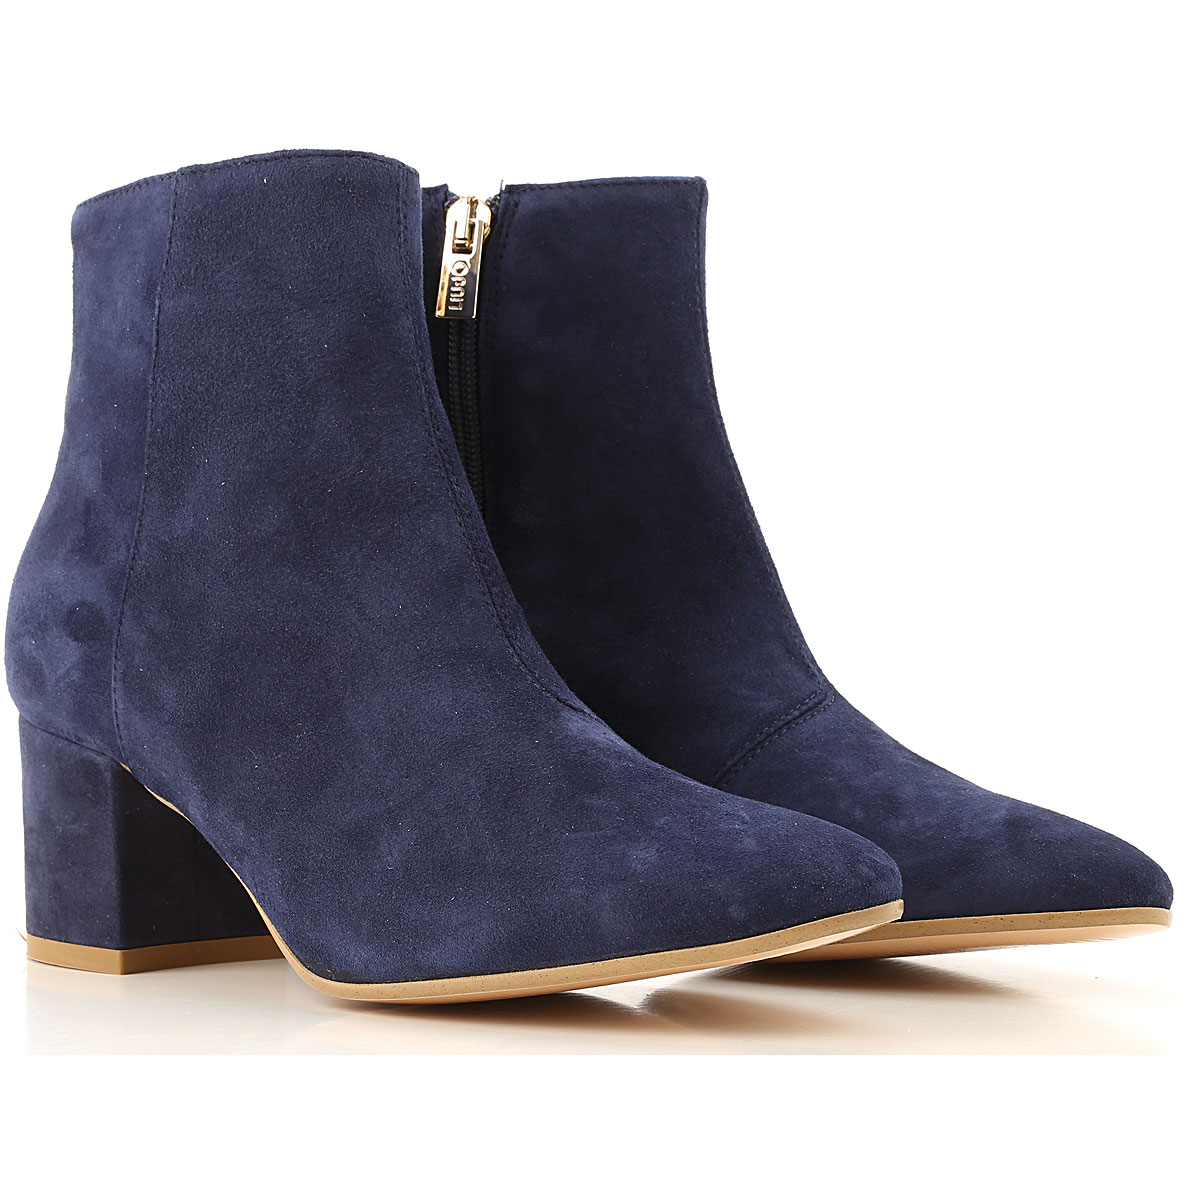 Liu Jo Boots for Women, Booties On Sale, Blue, Suede leather, 2019, 10 8 9